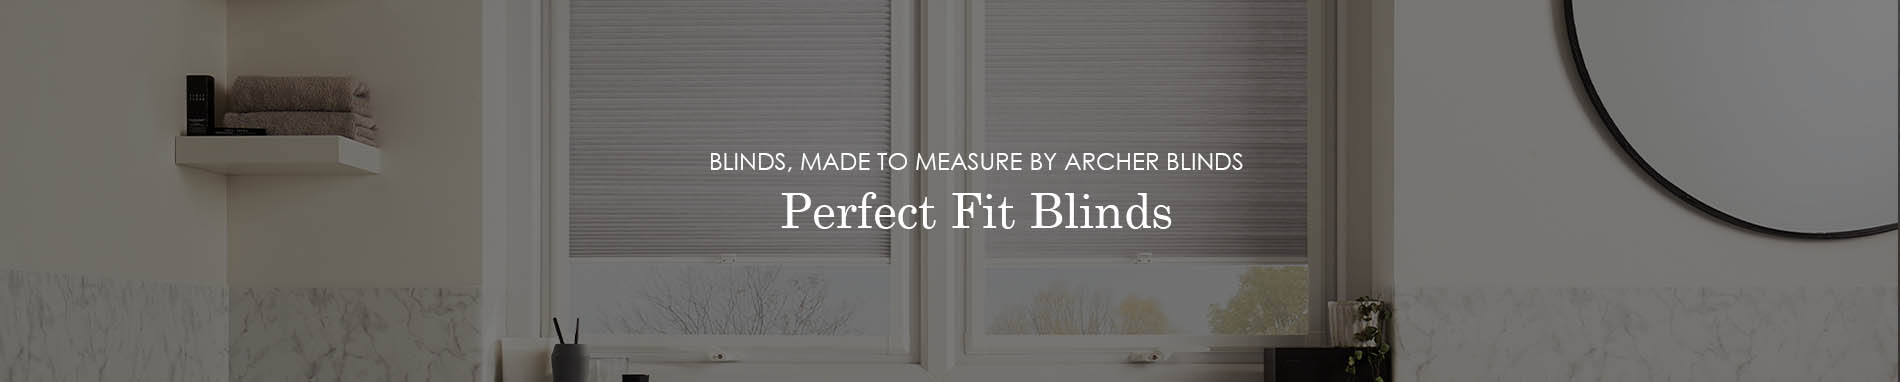 perfect fit blinds banner